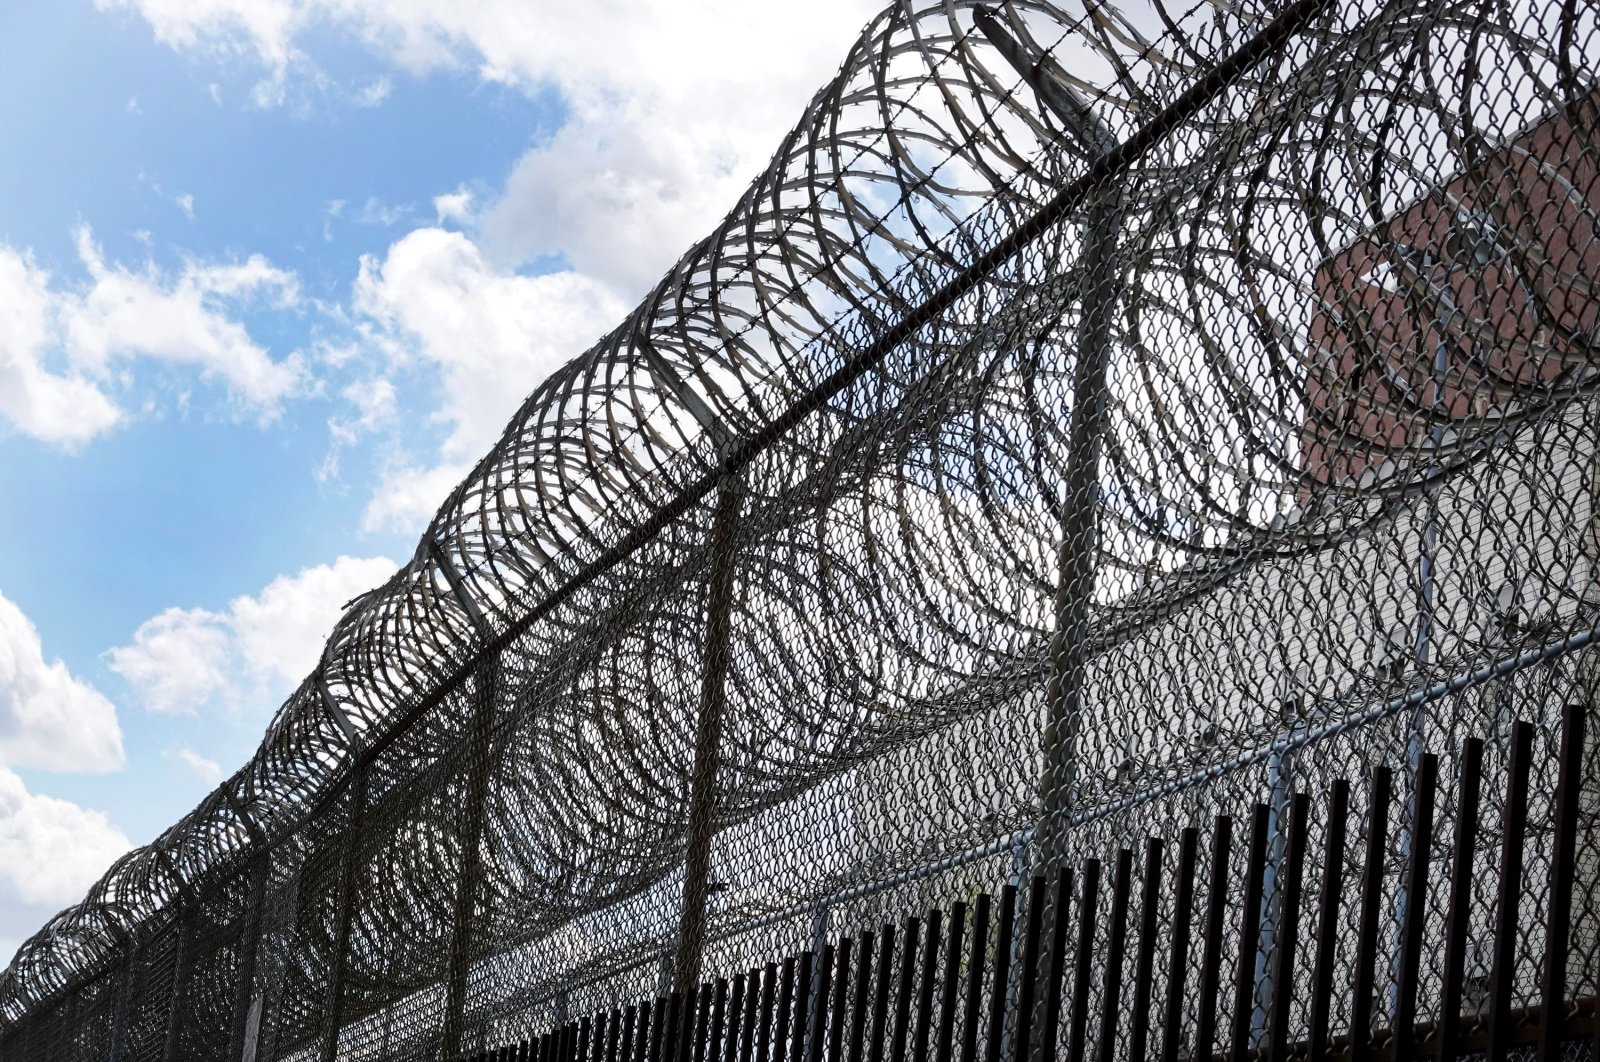 A fence surrounds the Cook County Jail, Chicago, Illinois, U.S., April 9, 2020. (Photo by Getty Images)